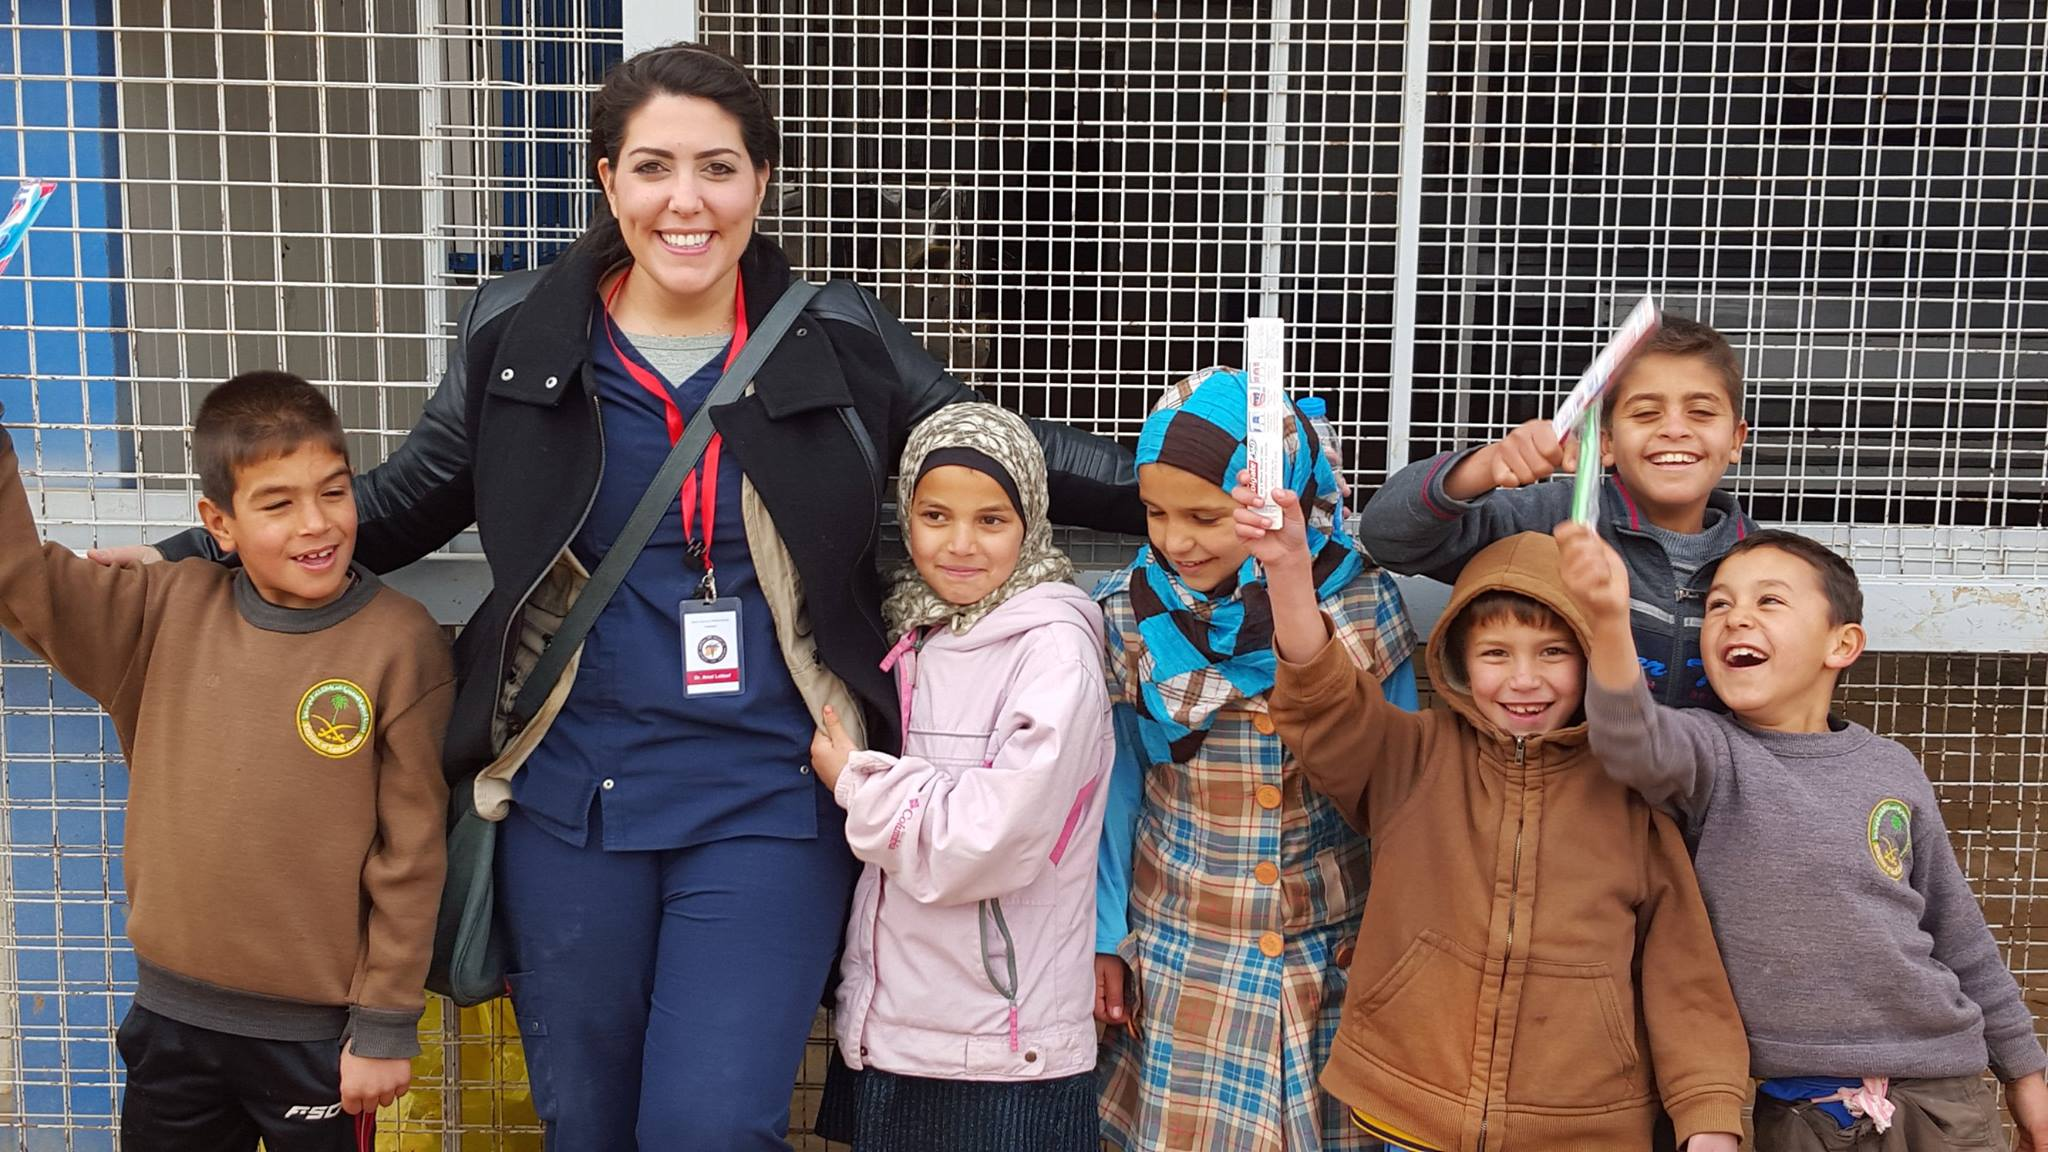 January 2015 Mission trip at Al- Zaatari Refugee Camp on the Syrian- Jordanian Border: Dr. Lattouf hands out toothbrushes to her patients and laughs as they use them as swords while playing.